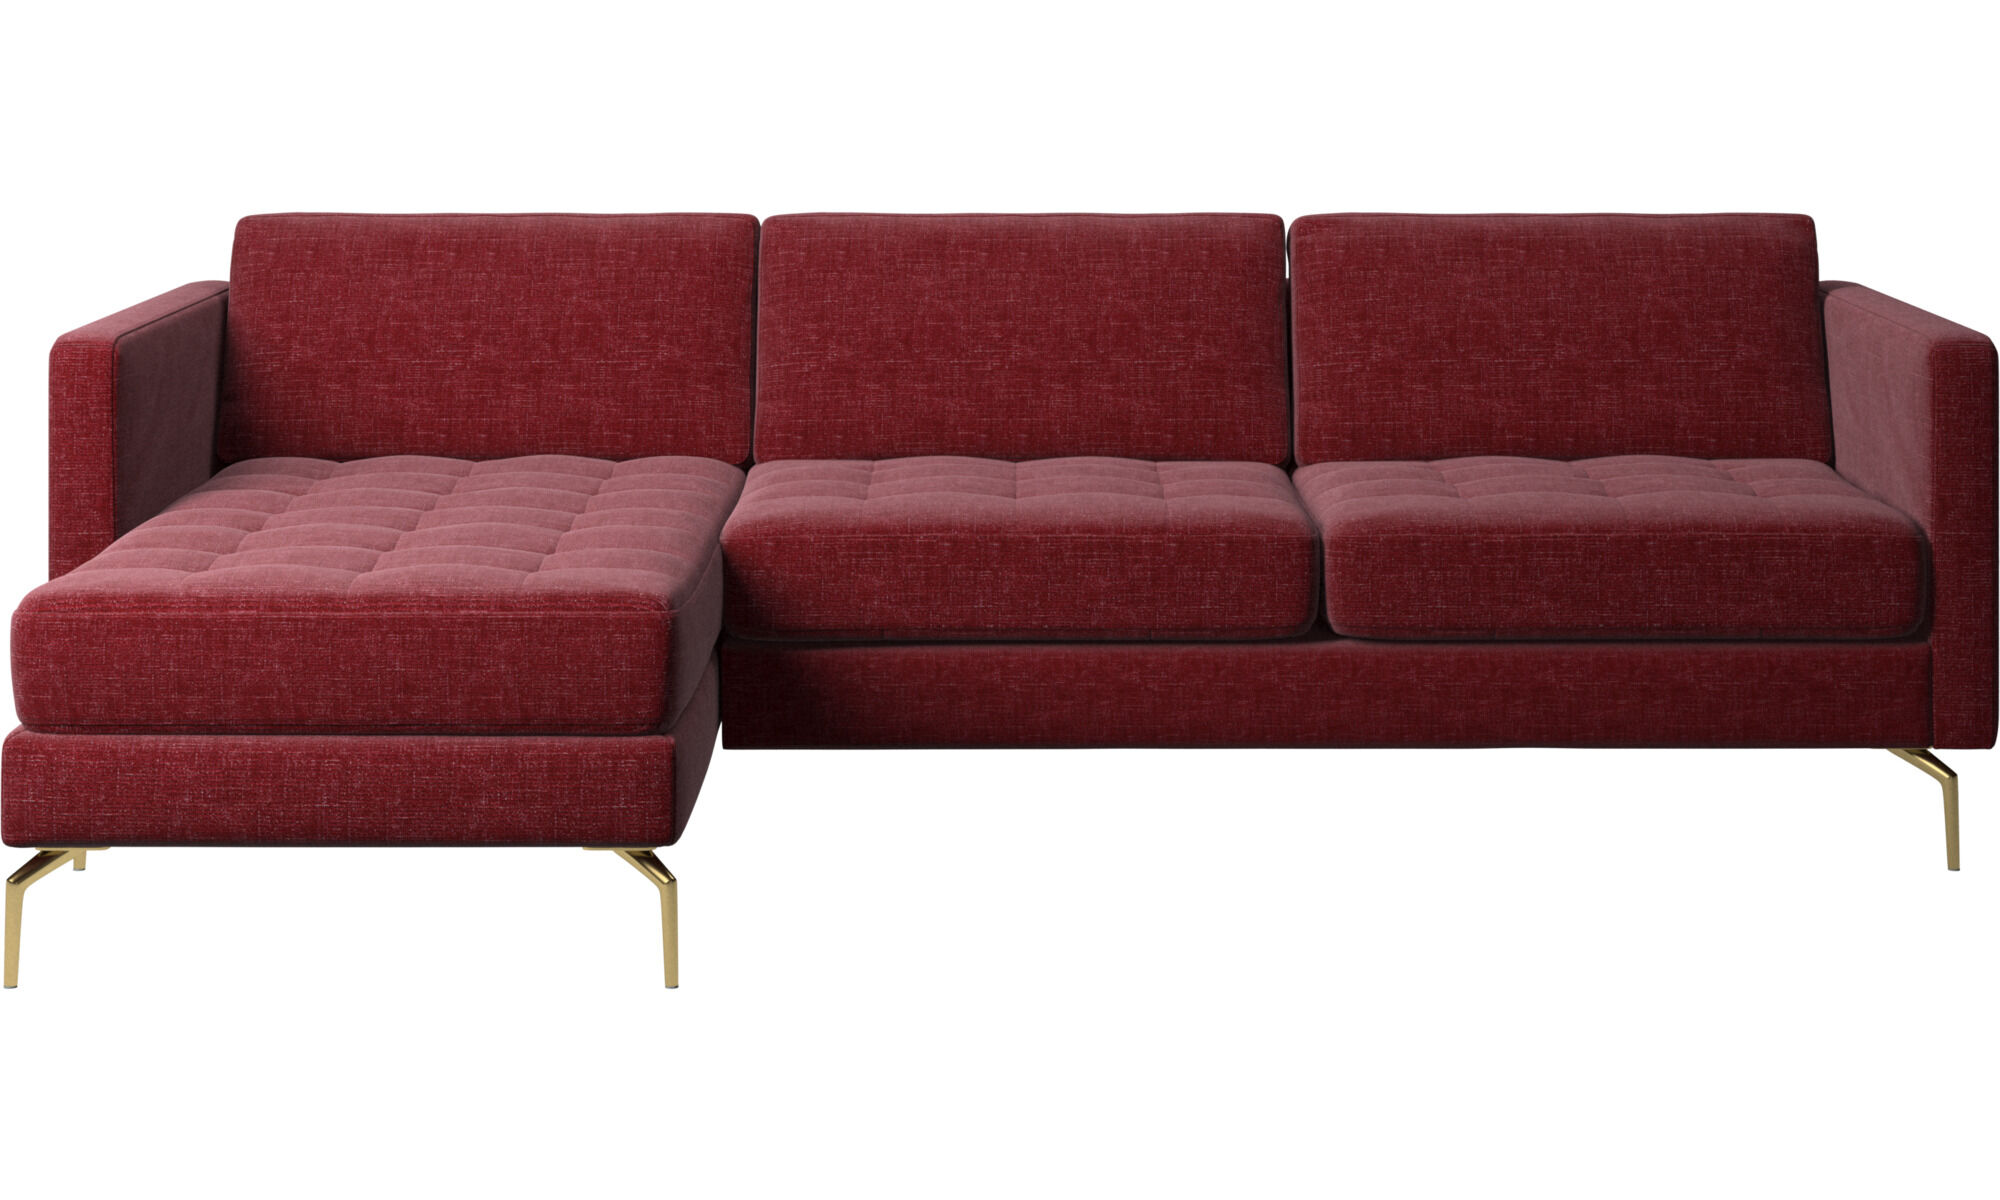 Chaise Longue Sofas   Osaka Sofa With Resting Unit, Tufted Seat   Red    Fabric